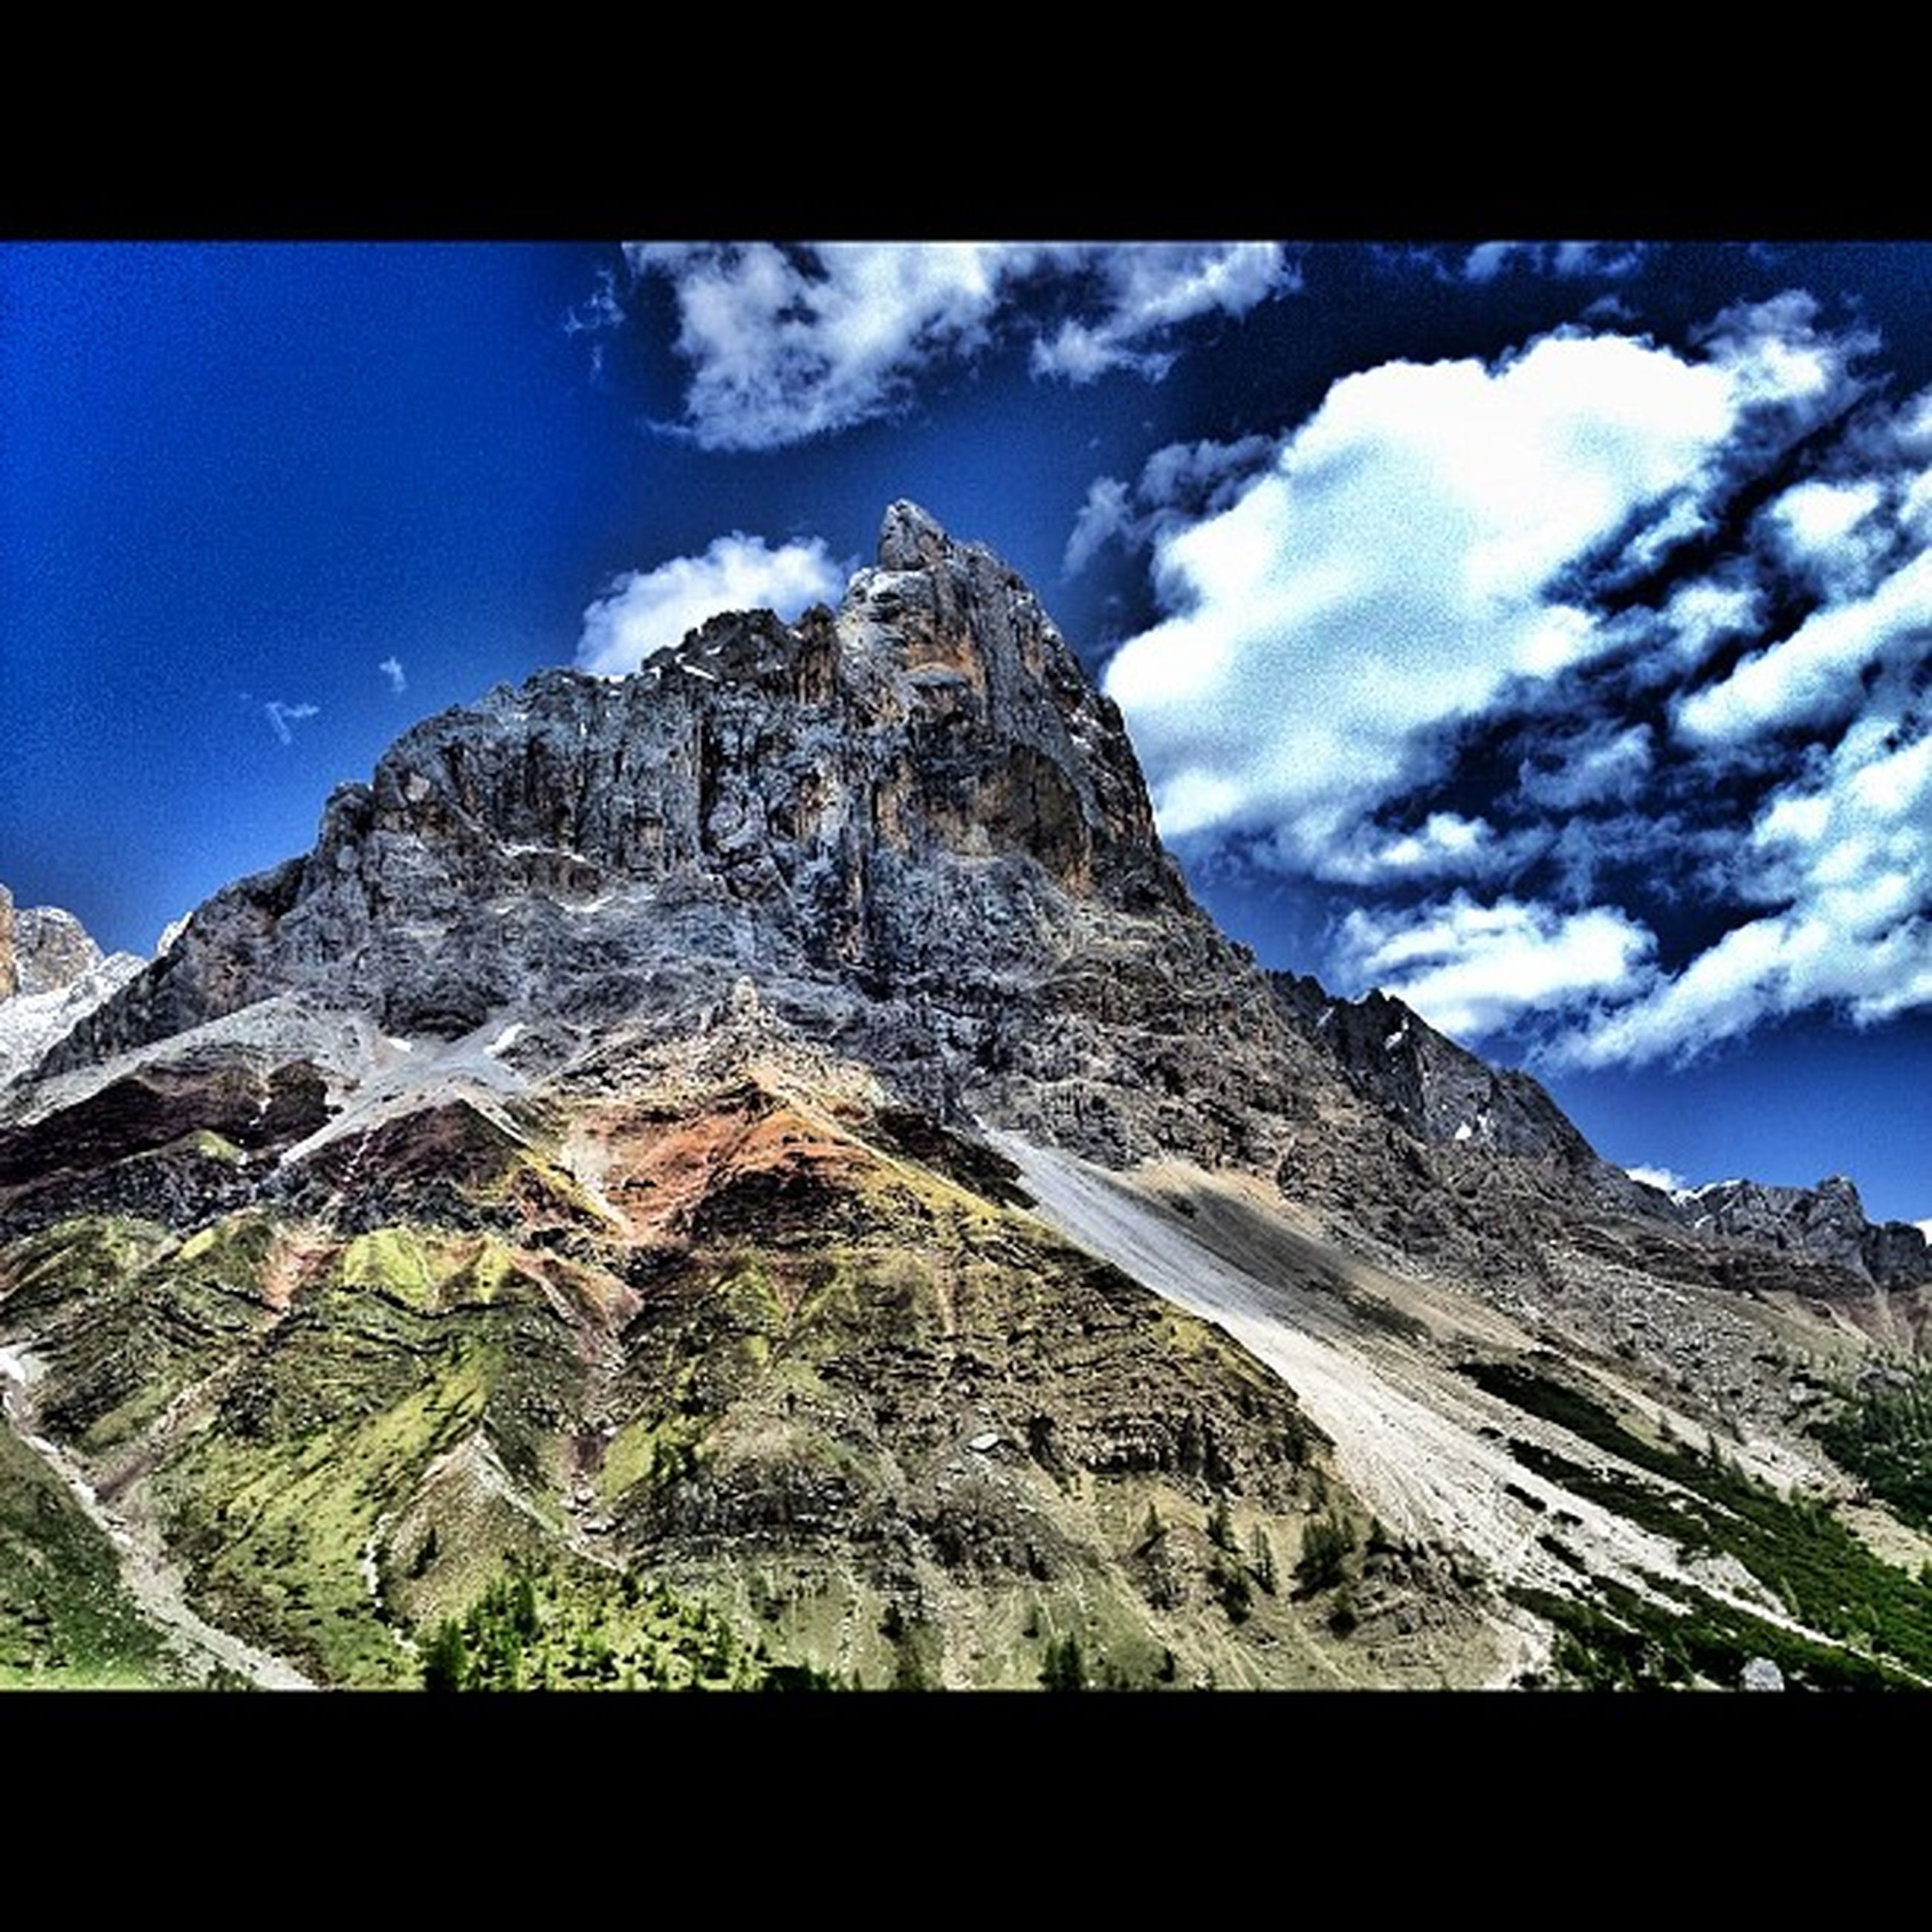 mountain, transfer print, sky, tranquil scene, tranquility, scenics, mountain range, beauty in nature, cloud - sky, auto post production filter, cloud, nature, landscape, blue, low angle view, non-urban scene, physical geography, idyllic, rocky mountains, majestic